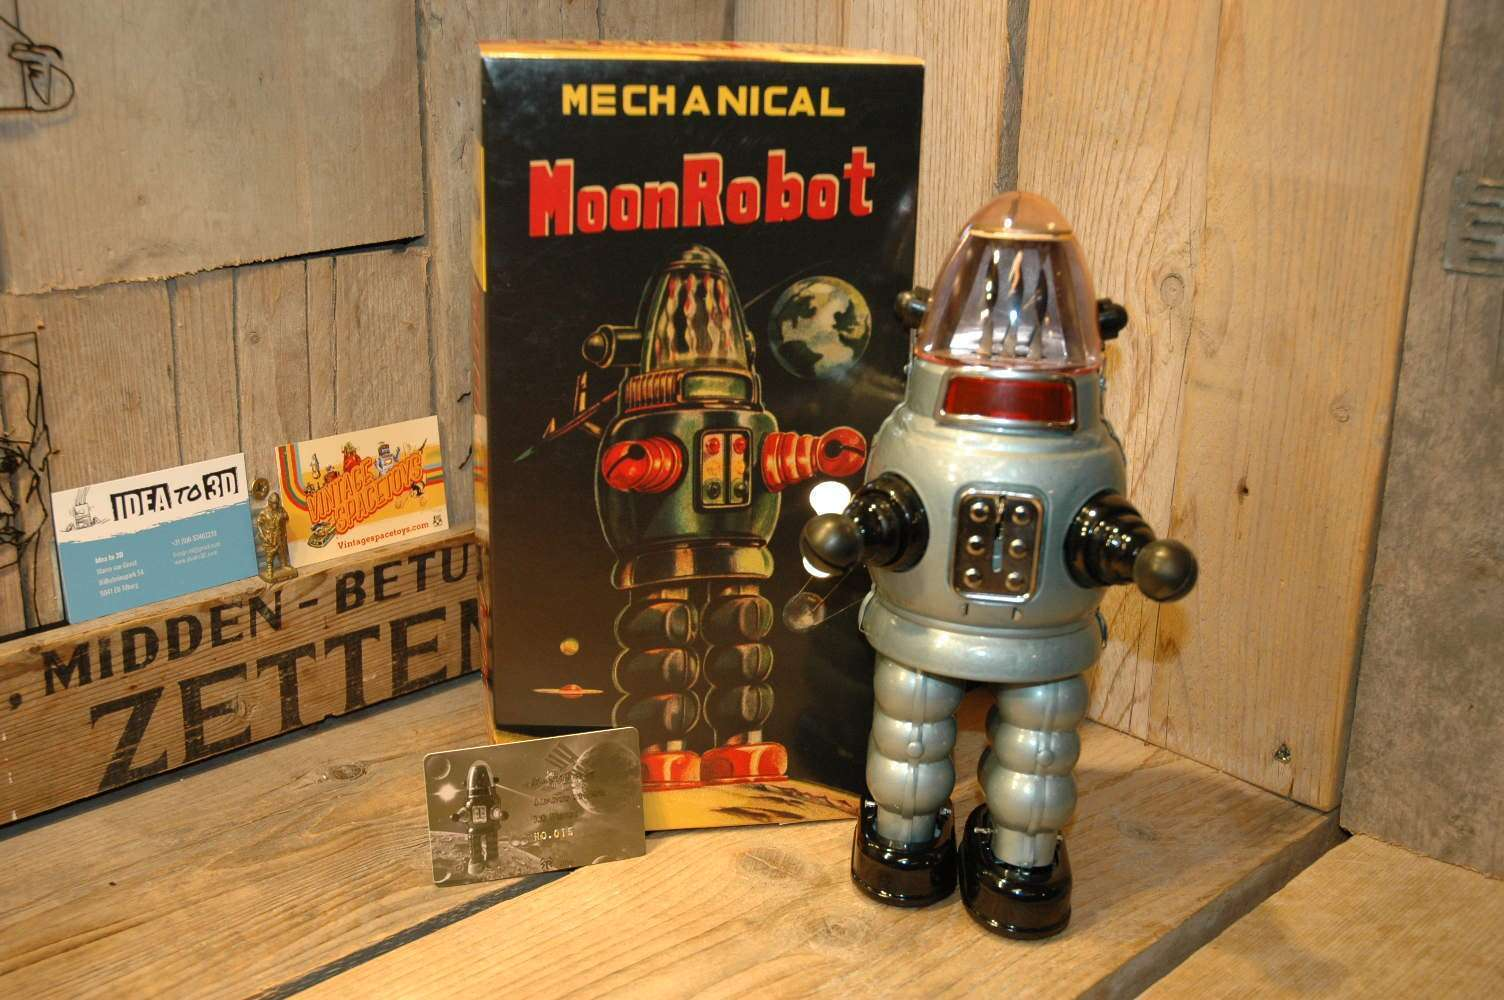 Kyarakuta Lab - Mechanical Moon Robot